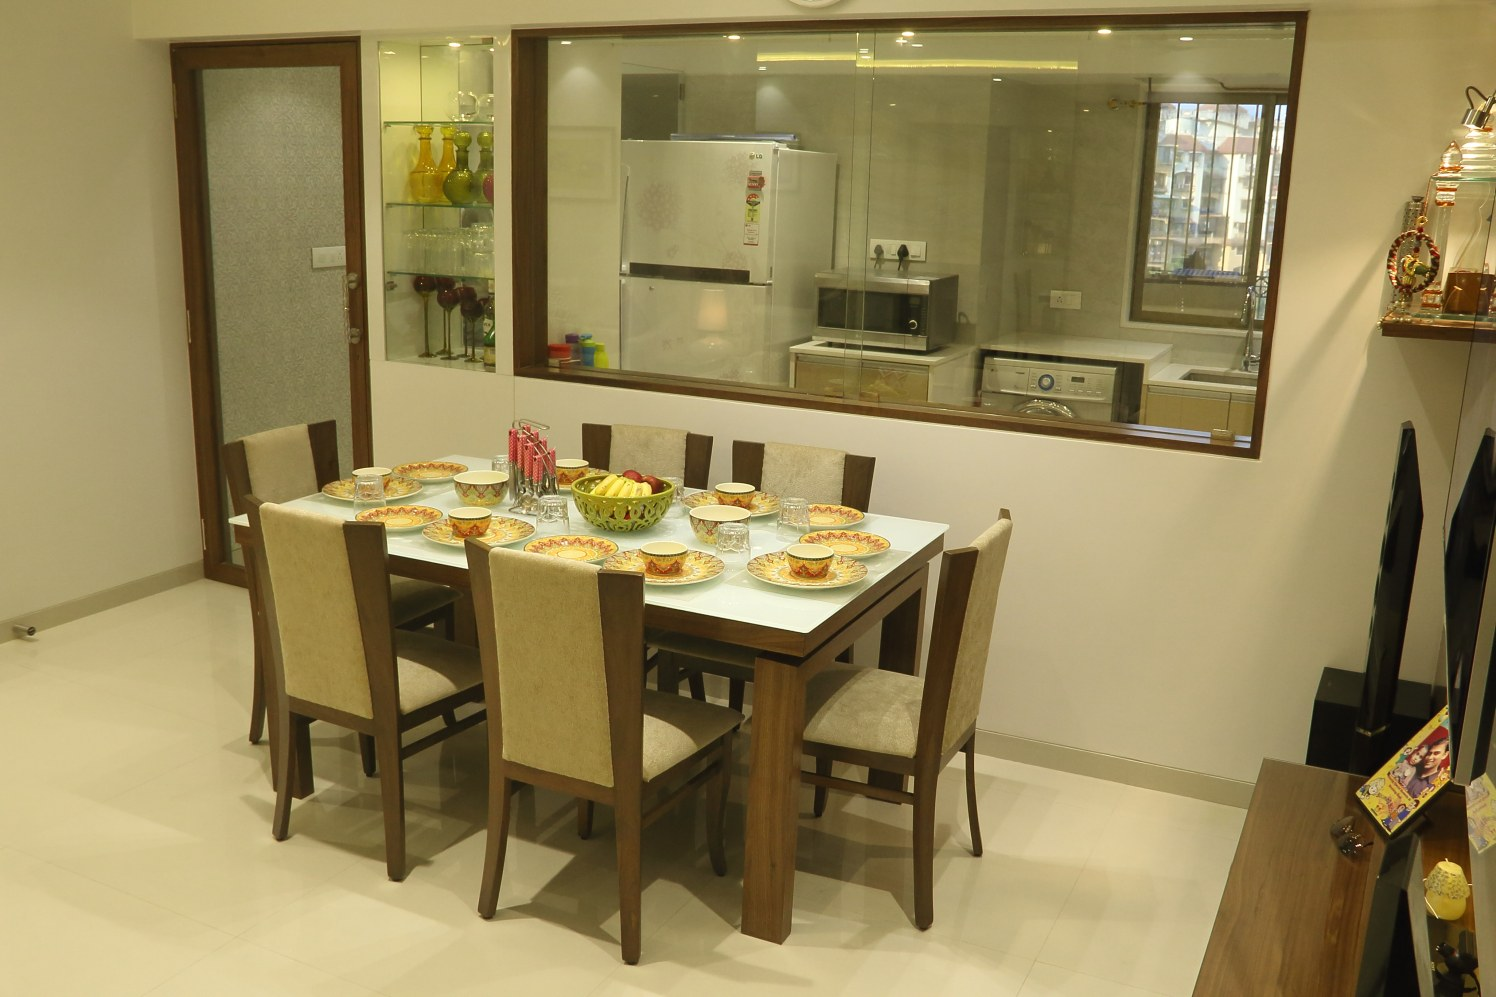 kitchen cum dining room by Hitesh Kacha Modern | Interior Design Photos & Ideas